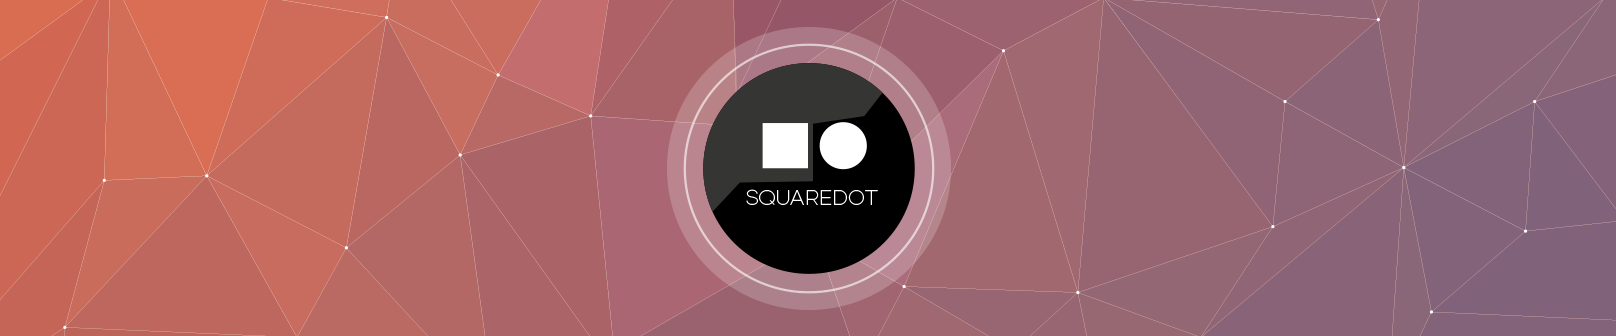 Generate leads with Squaredot